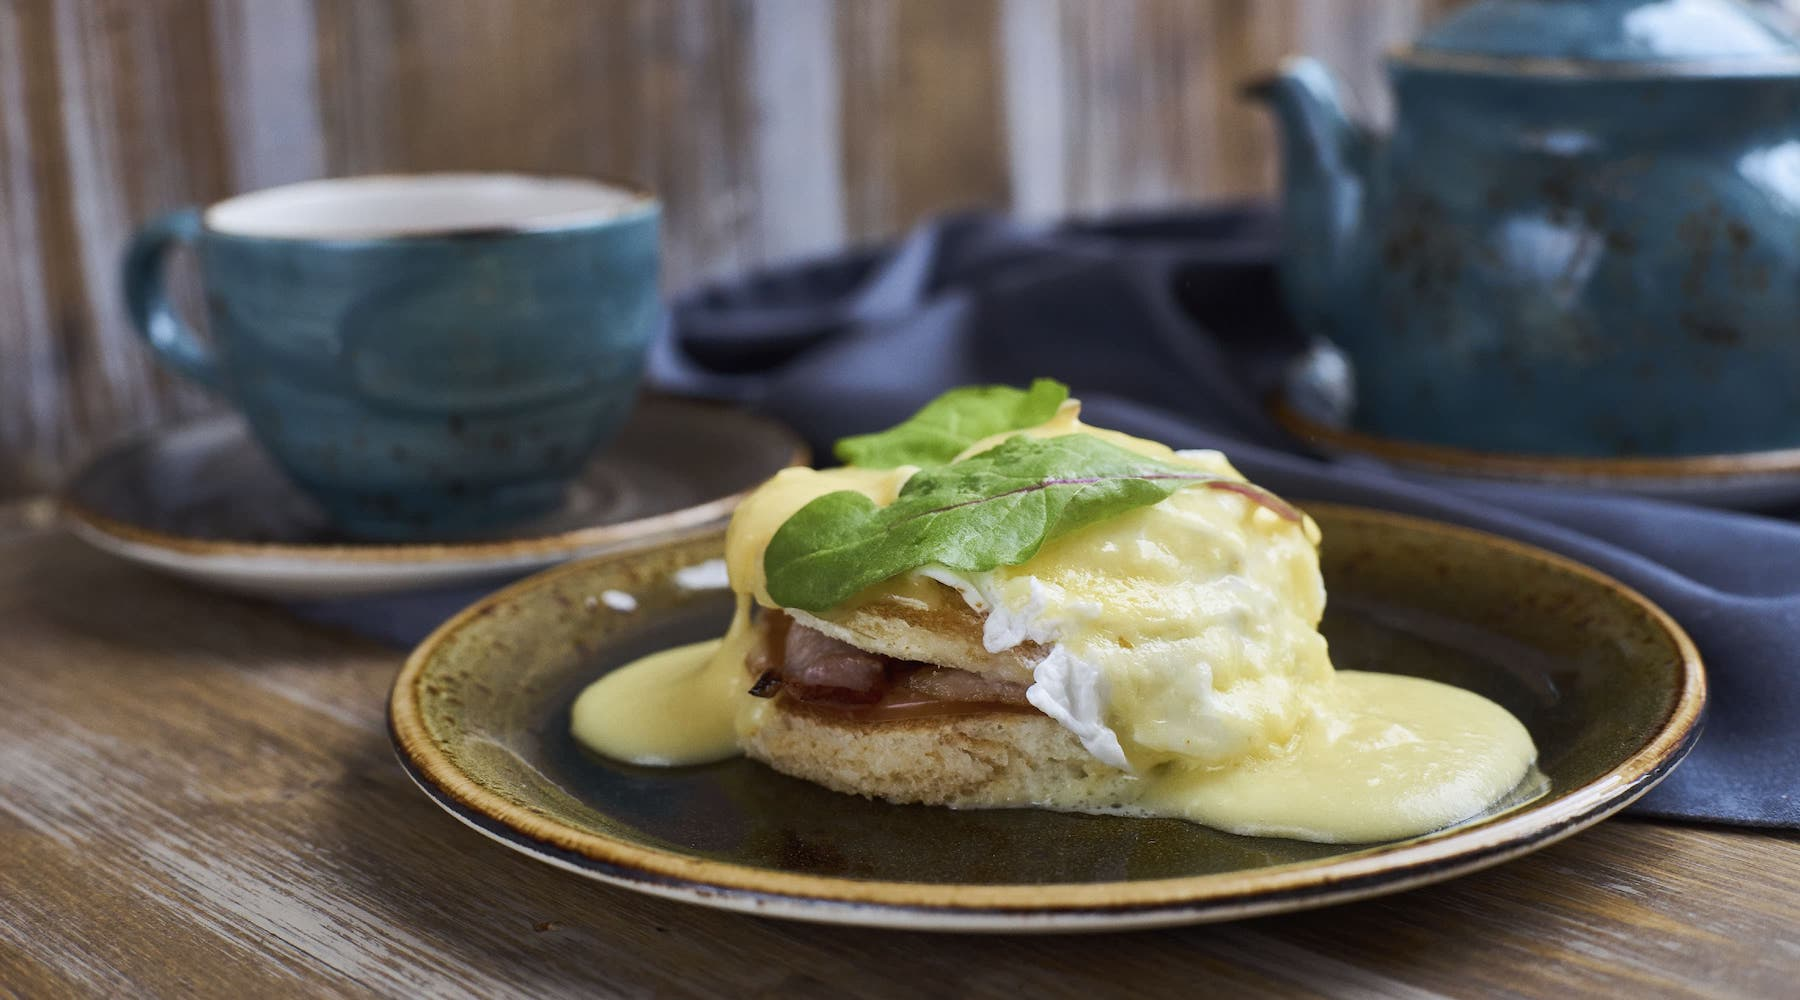 Brunch with eggs Benedict and organic Chateau Rouge black tea